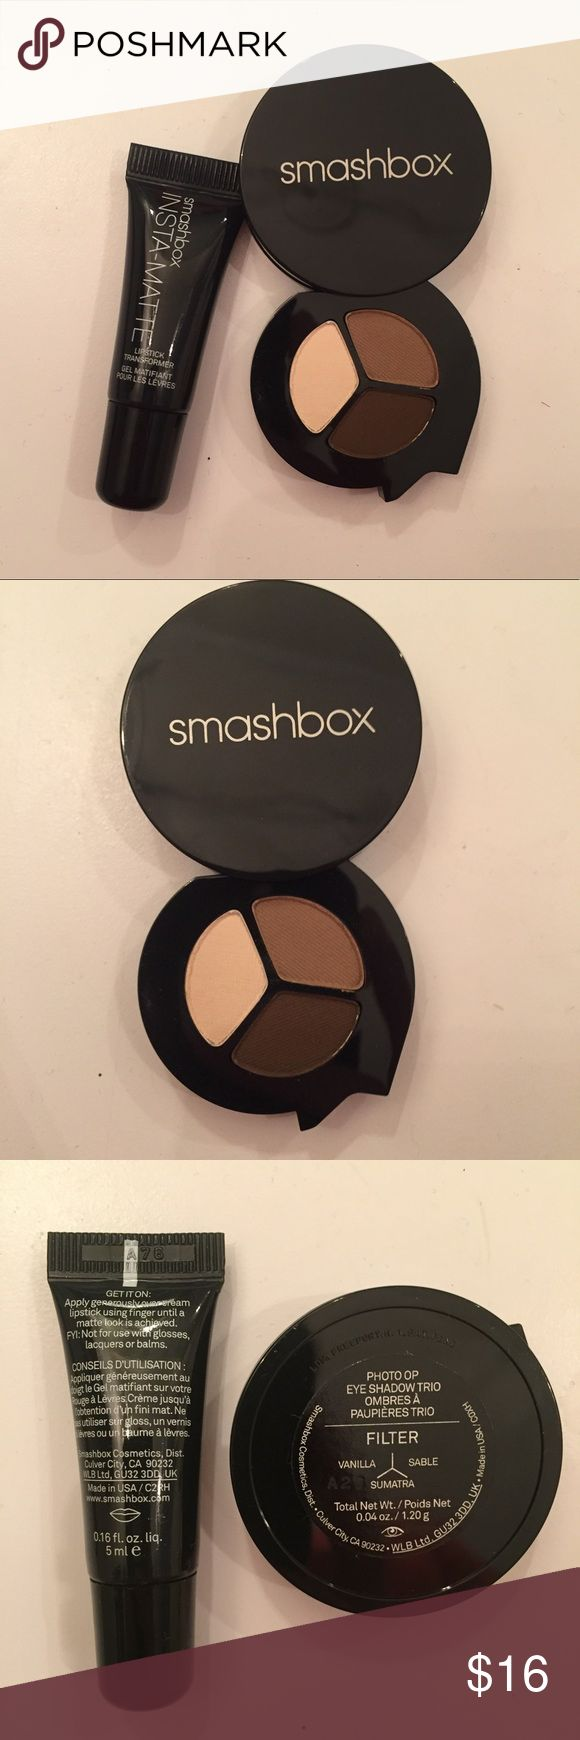 Smashbox Eyeshadow & Matte lip transformer Smashbox Insta Matte Lipstick transformer changes any lipstick into a matte version. Brand new deluxe travel size. 0.15 fl oz / 5 ml  Smashbox eyeshadow trio. Gorgeous nude shades  Filter --- Vanilla, sable, Sumatra  0.04 oz  travel size  Check out my other beauty makeup and other listings for bundles! Smashbox Makeup Eyeshadow